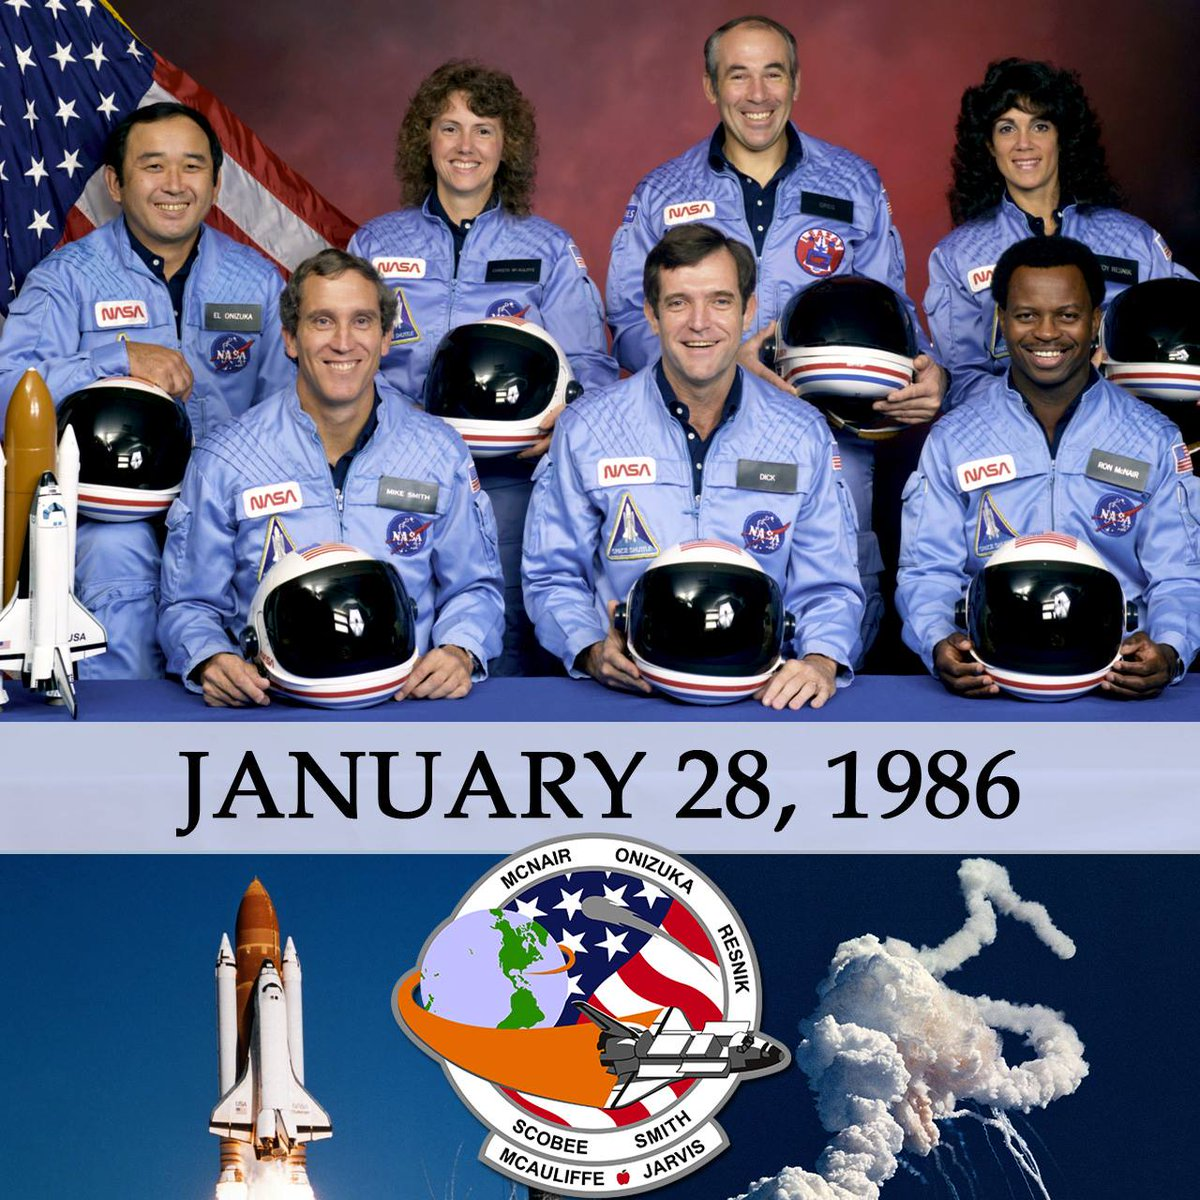 space shuttle challenger 33 years ago - photo #22